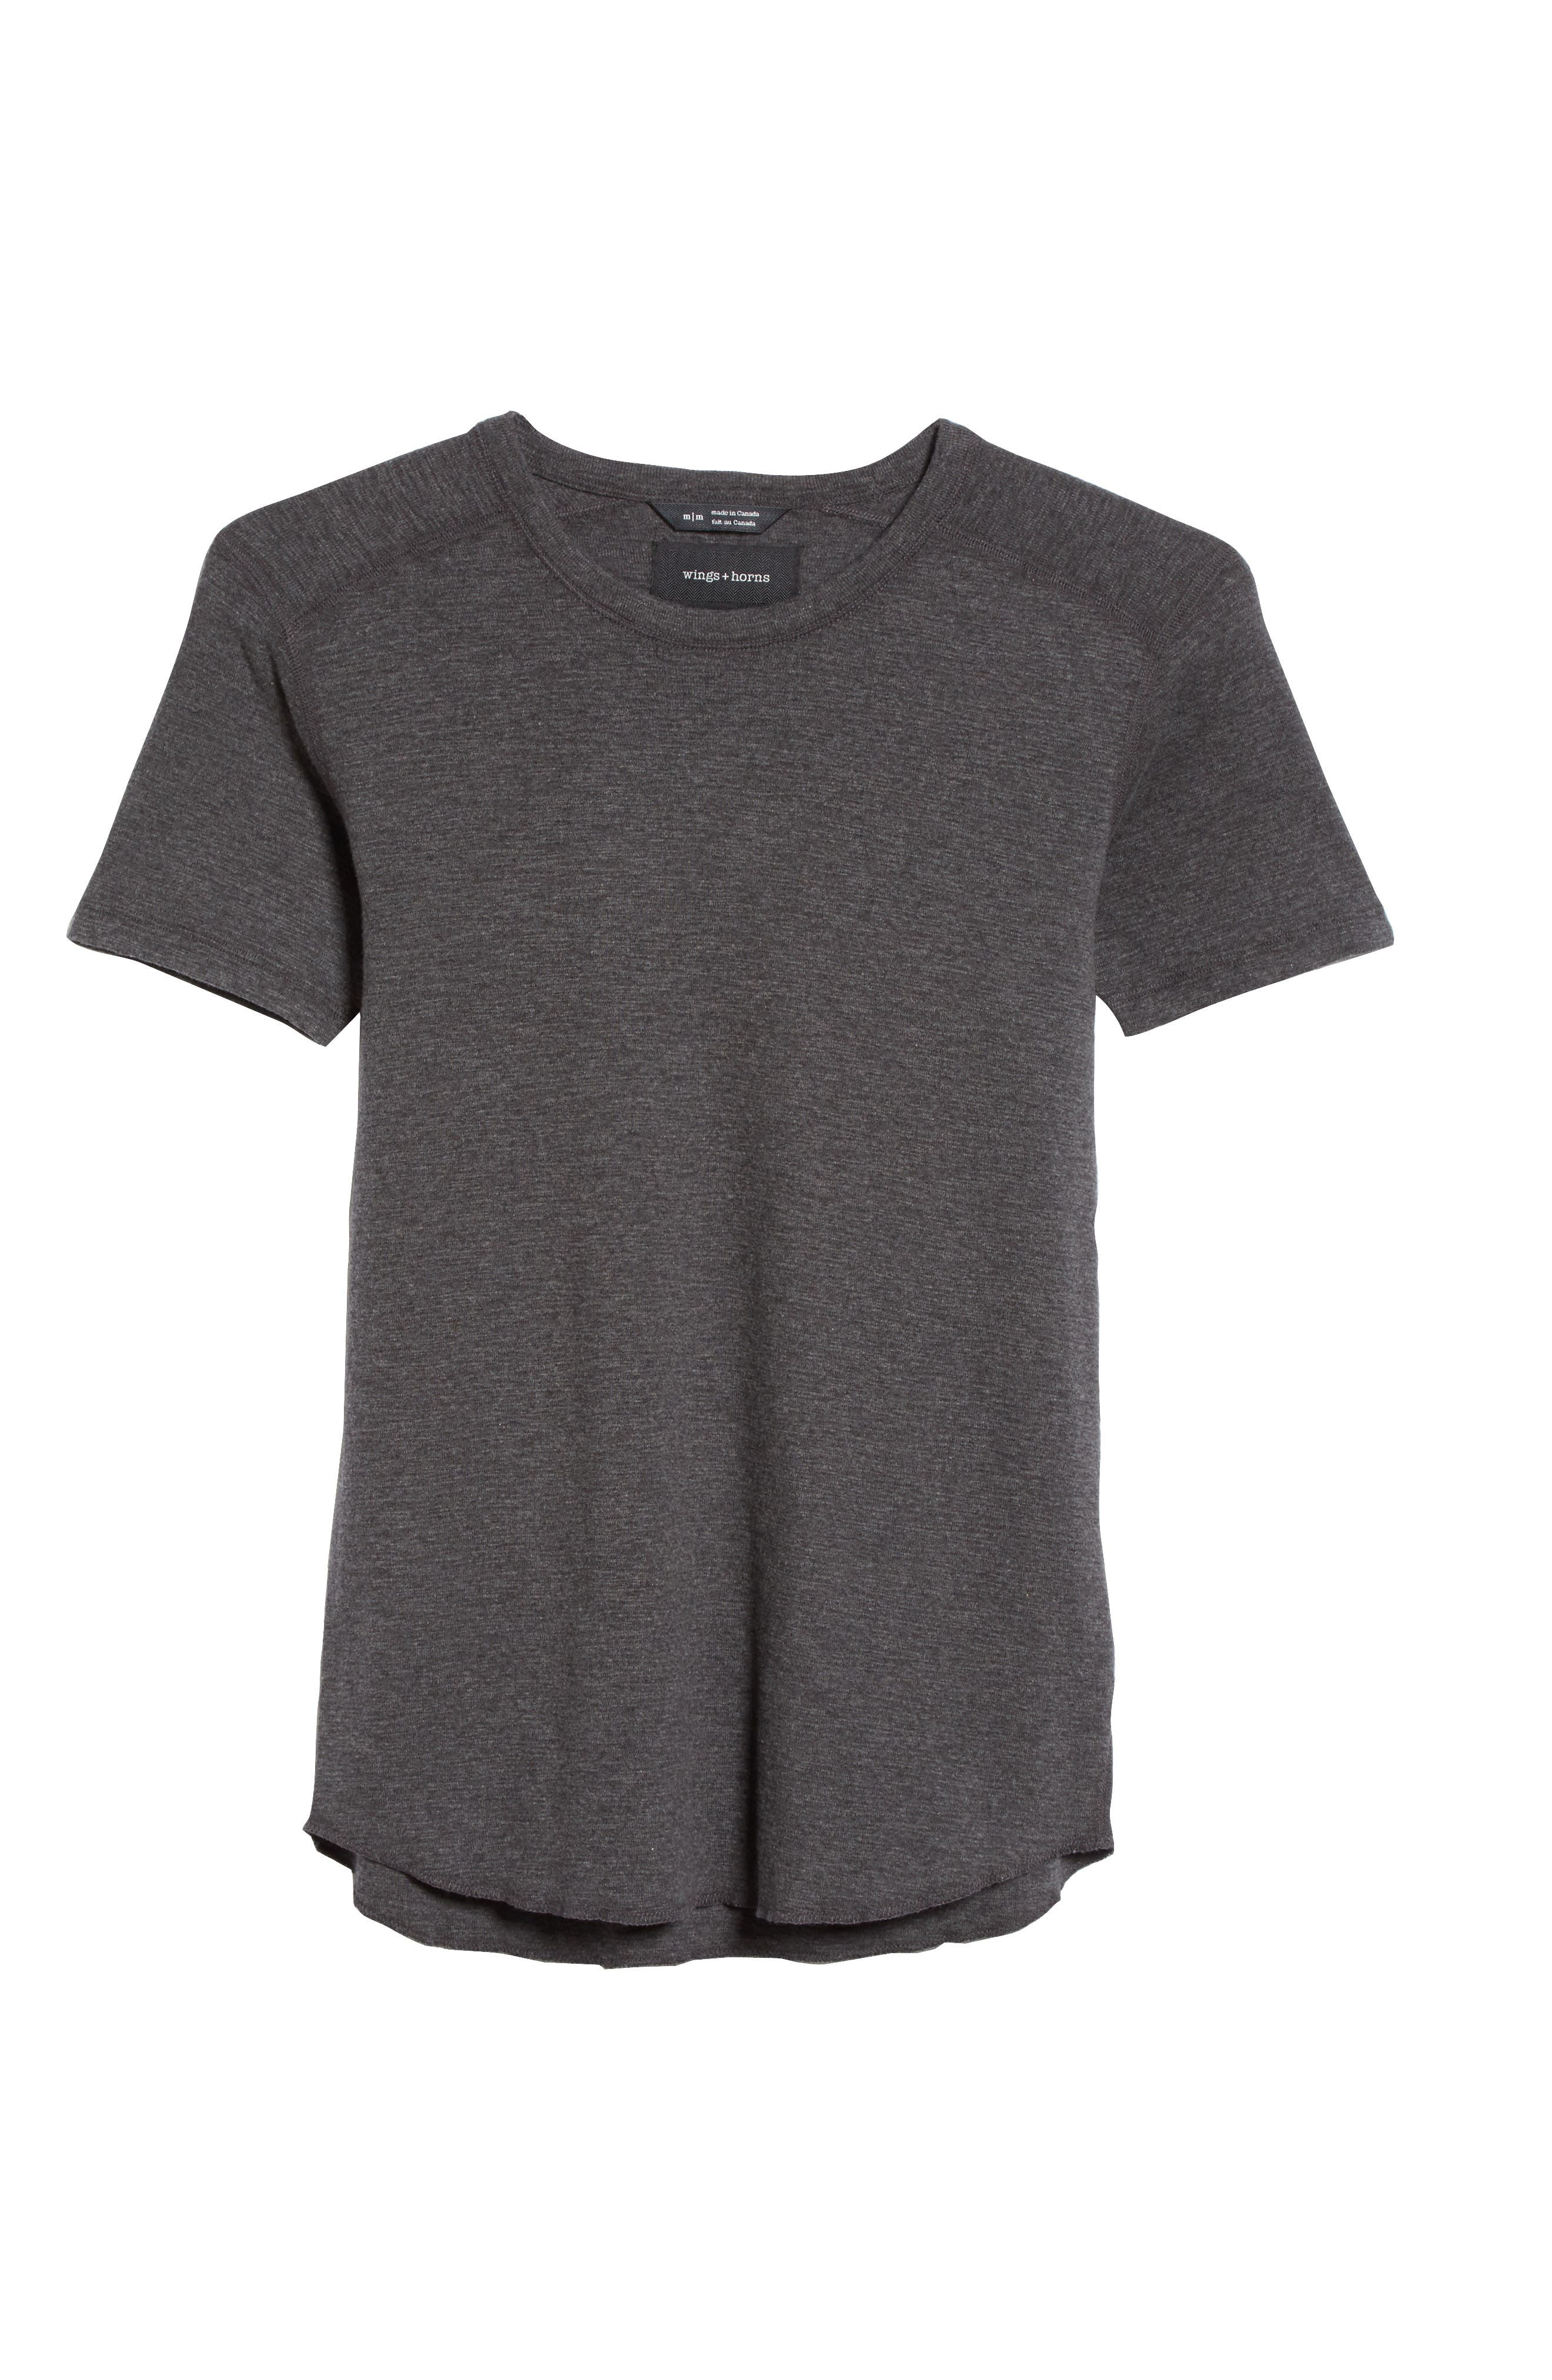 WINGS + HORNS, Ribbed Slub Cotton T-Shirt, Alternate thumbnail 6, color, HEATHER CHARCOAL